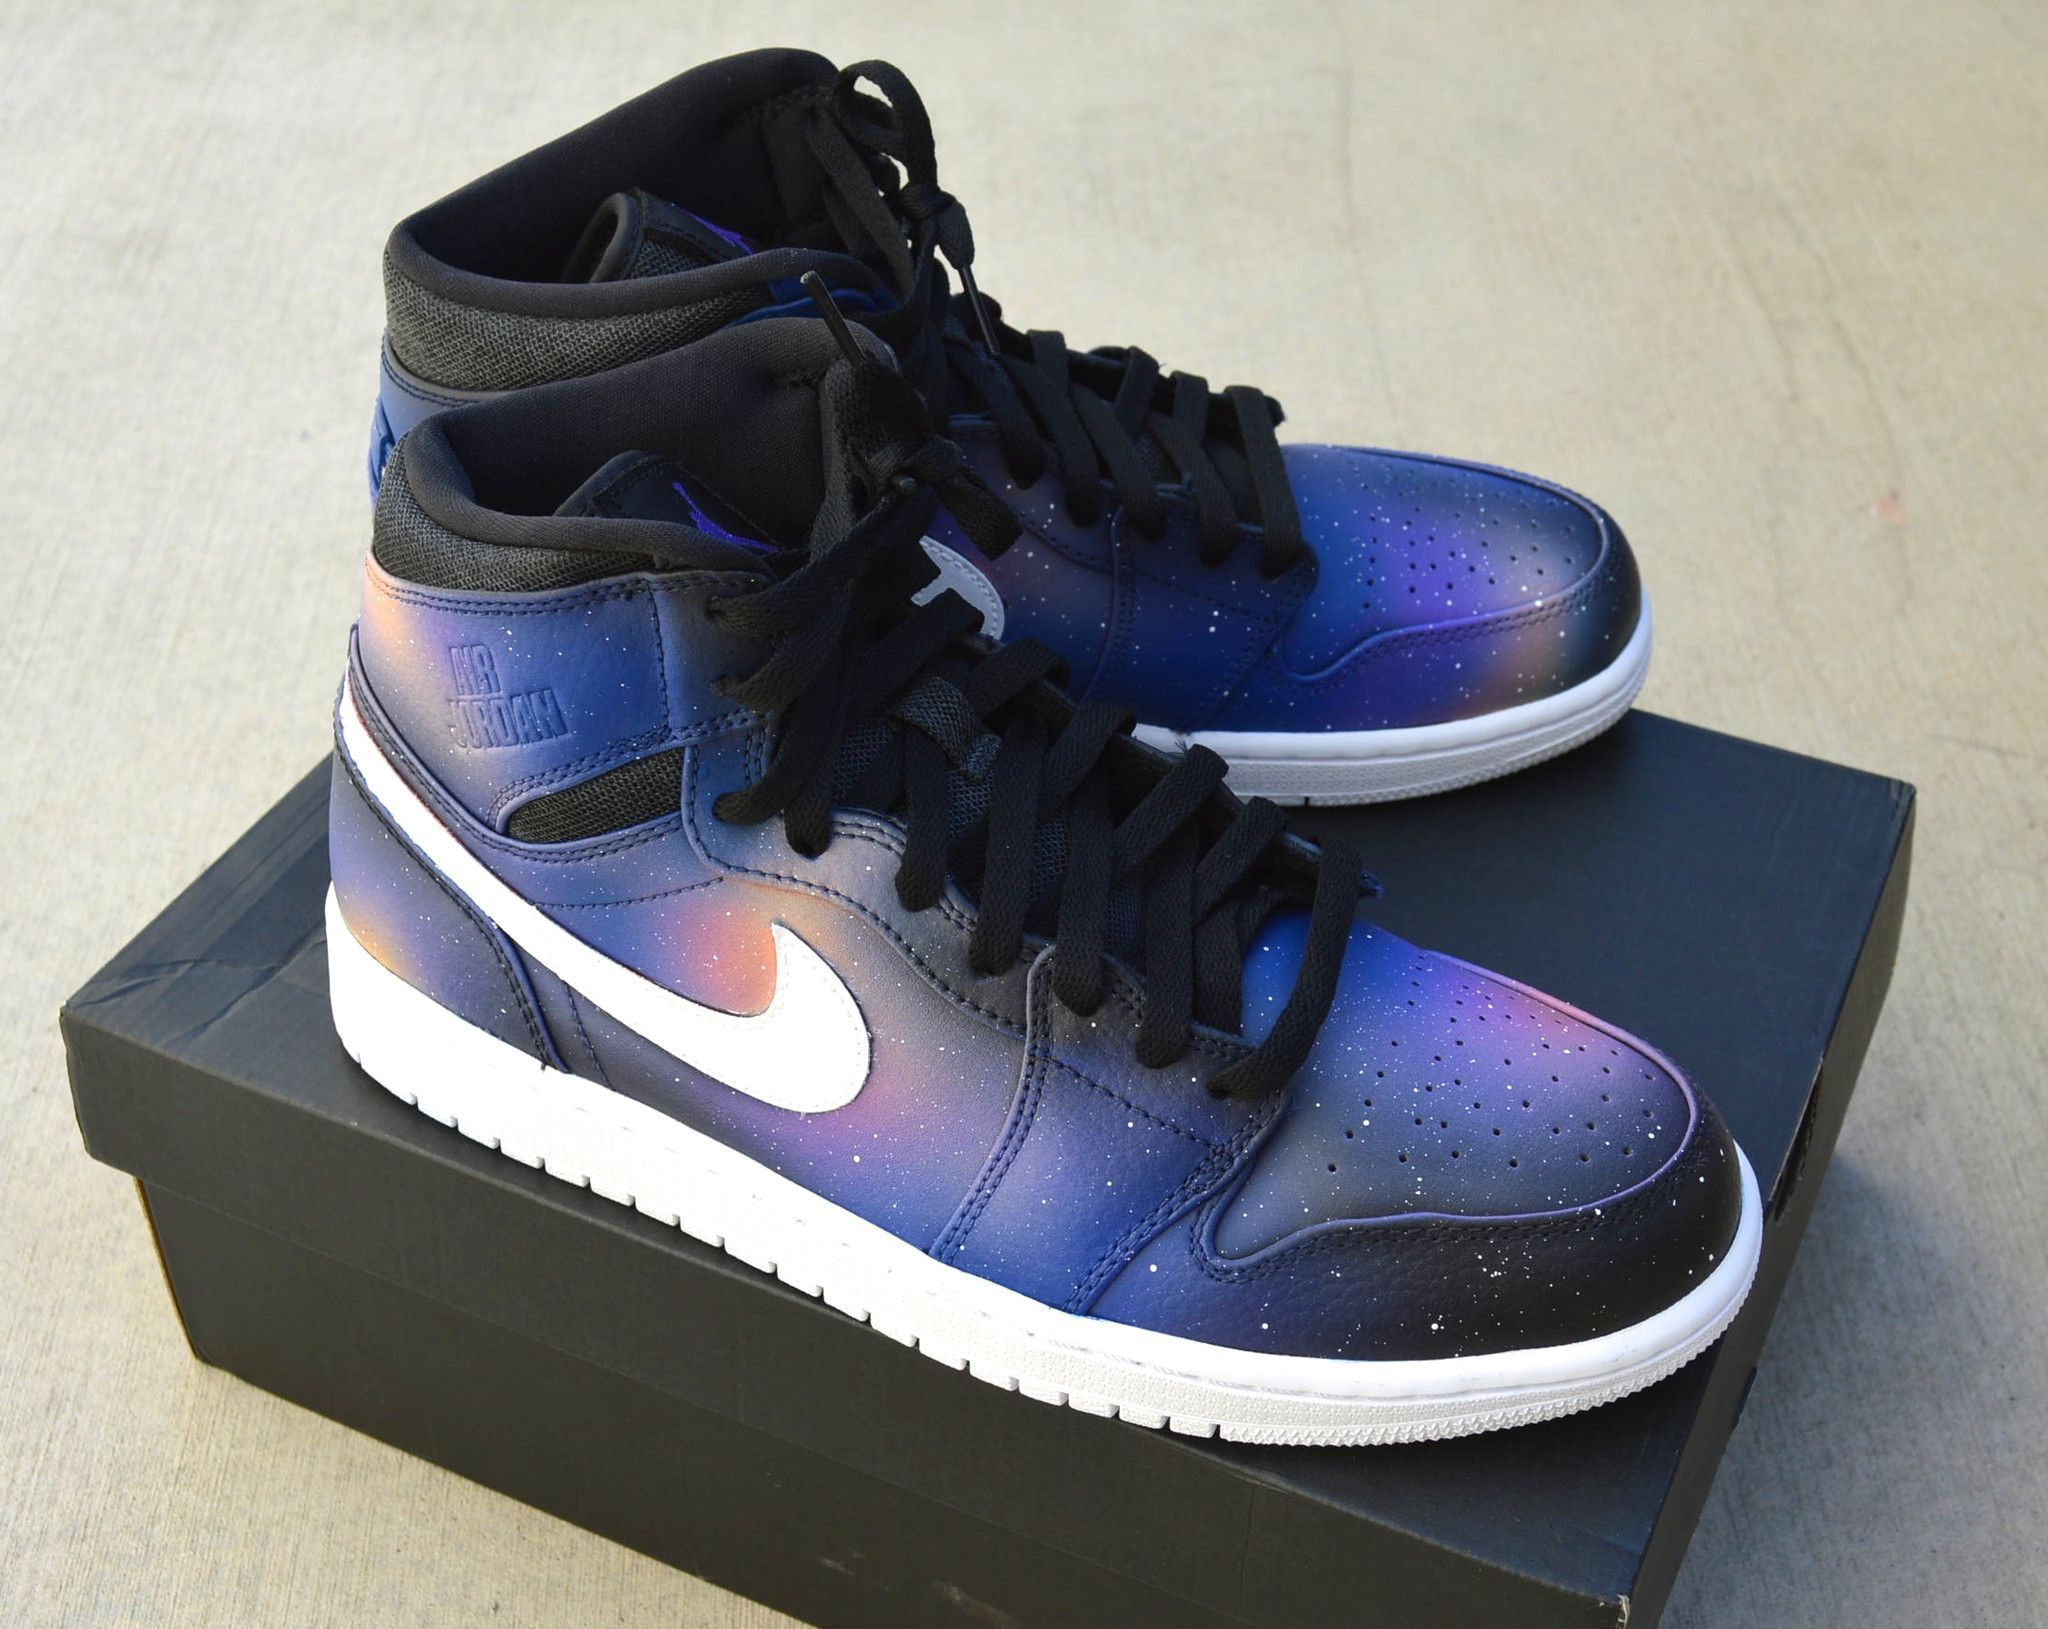 newest collection 6a432 5d5fe These custom Hand Painted Jordan 1 Retro Sneakers feature a my signature  galaxy pattern all around the shoes. No two pairs are the same and your  pair will ...